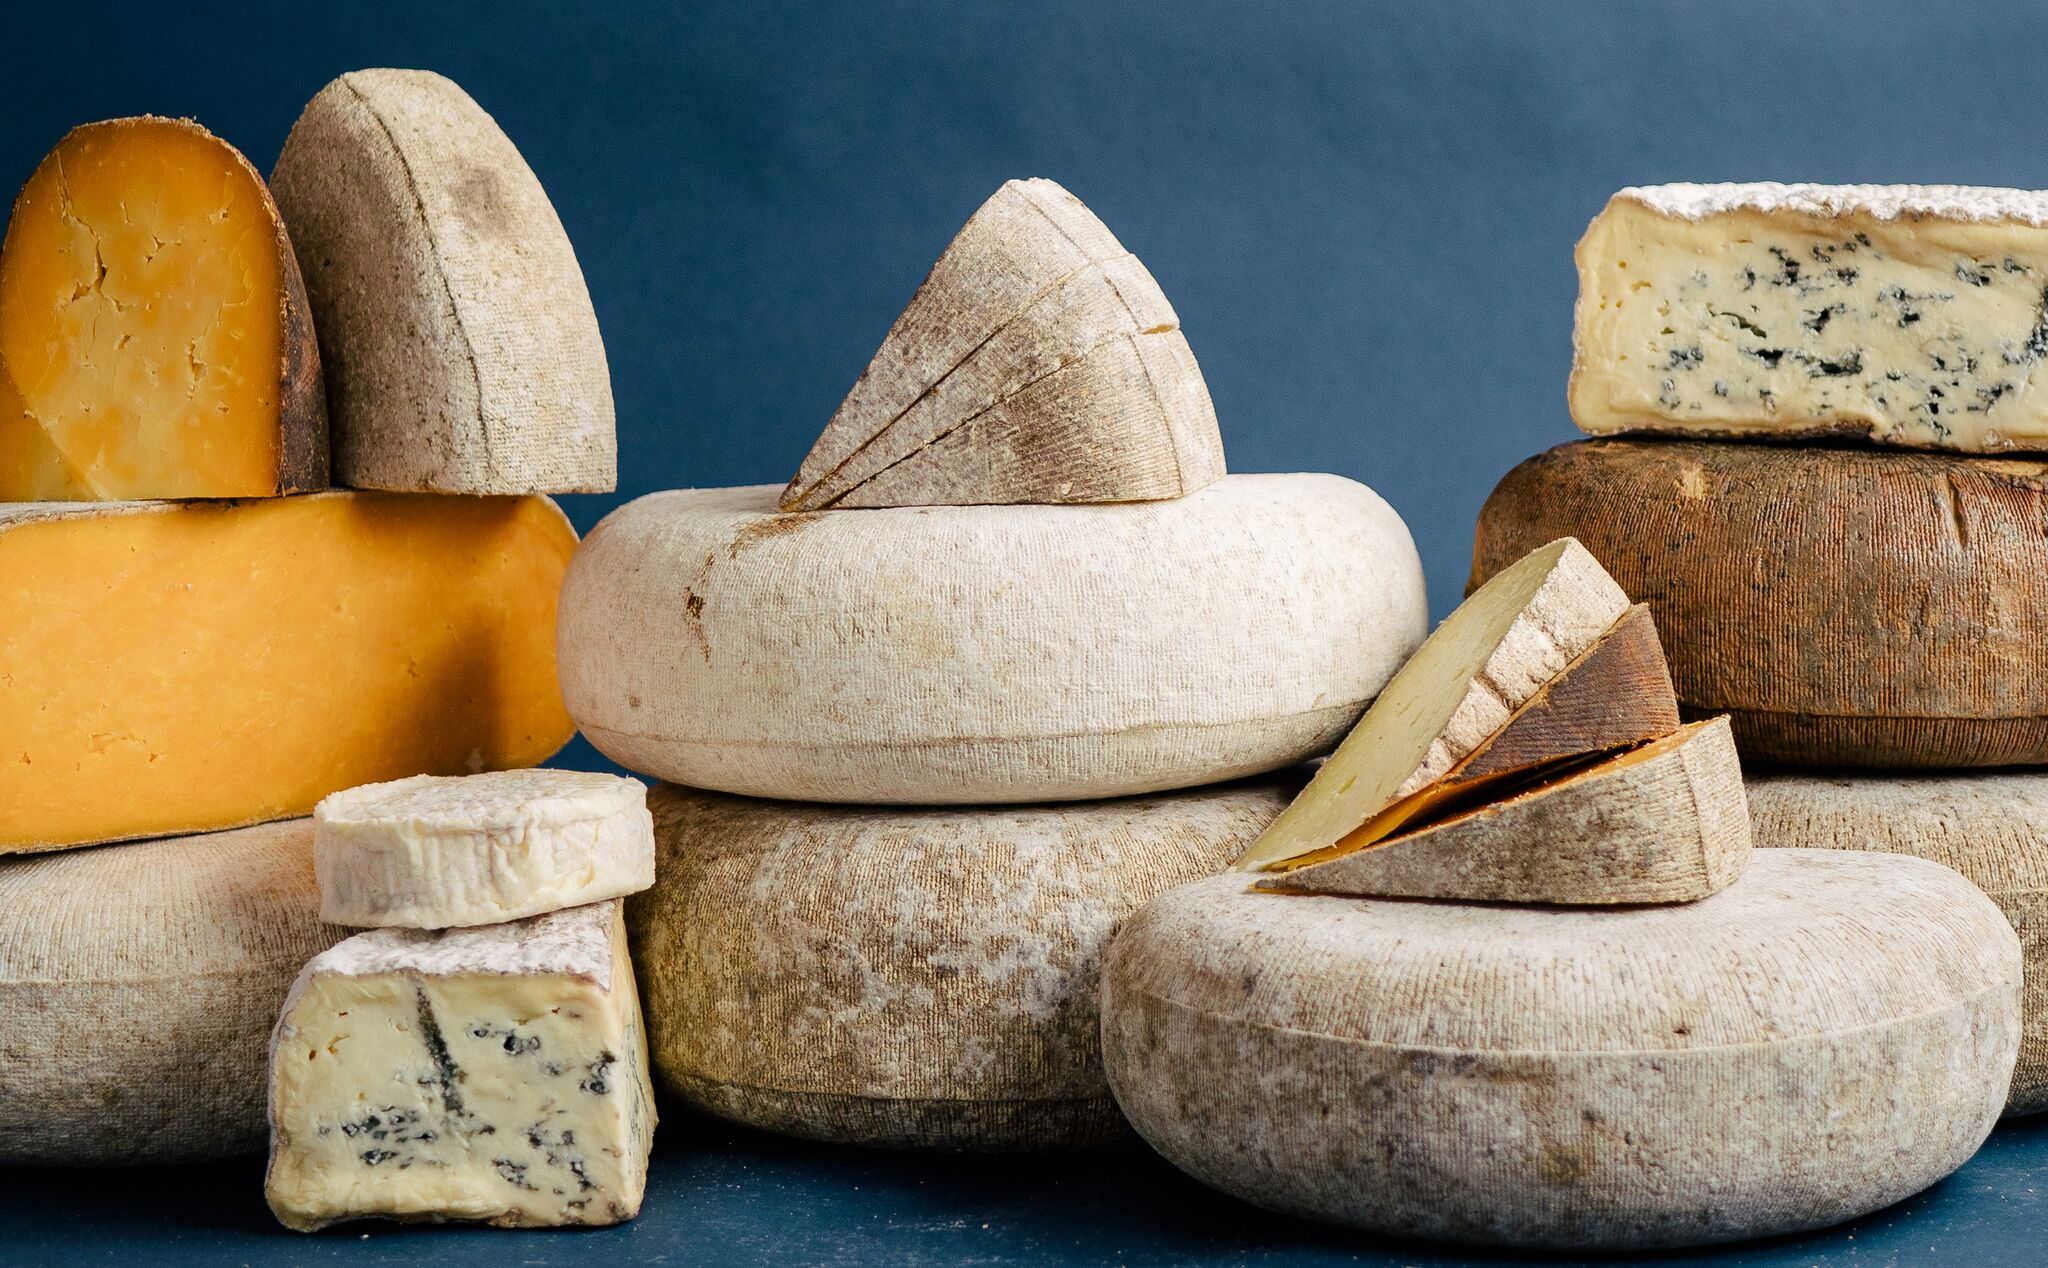 Moyden's Handmade Cheese Collection